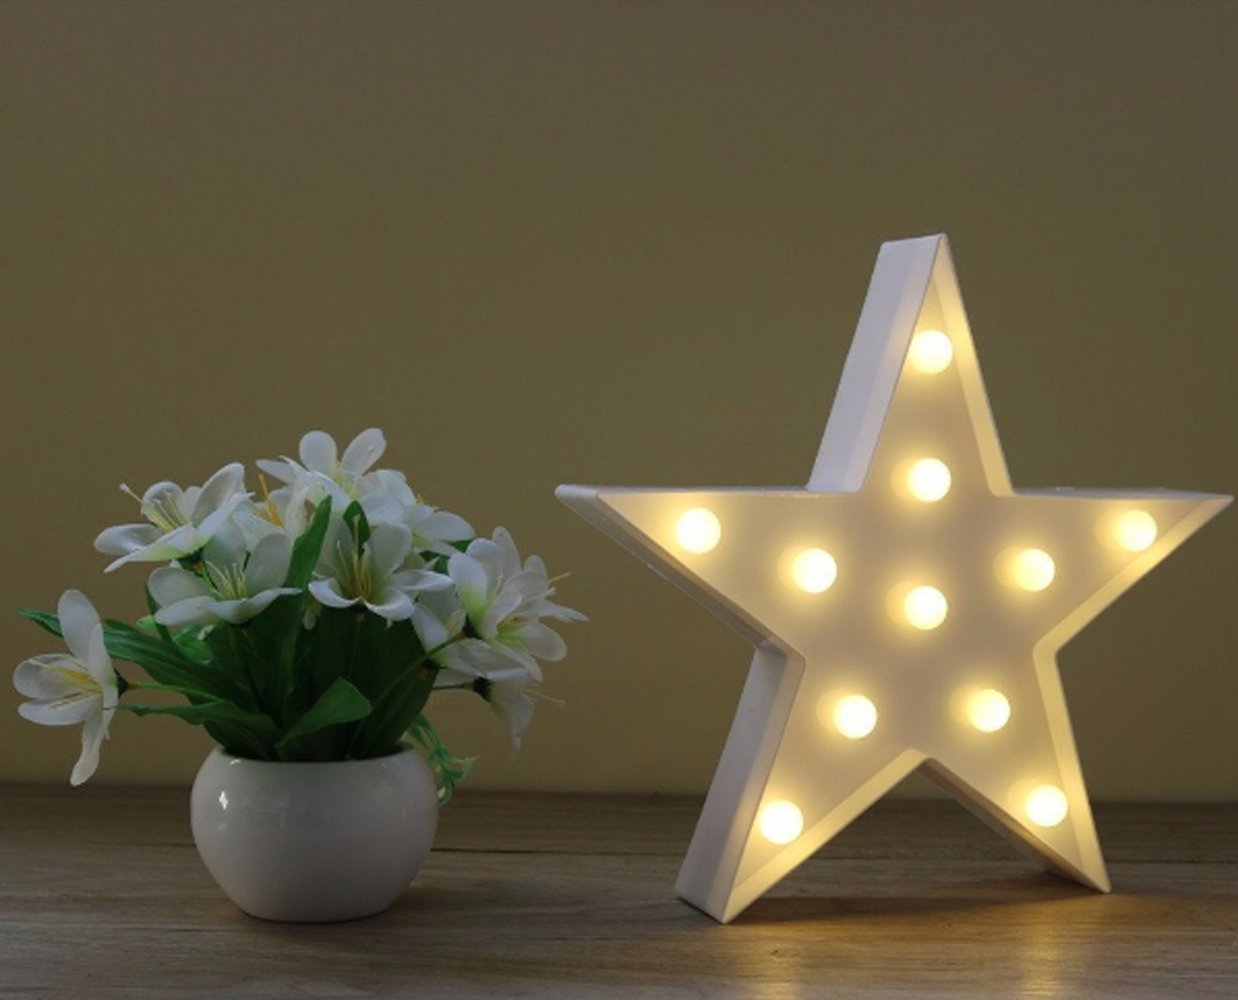 Wringo Decorative Letters Light Star Shape LED Plastic Marquee Light Battery Operated LED Marquee Sign for Home Christmas Decorations by Wringo